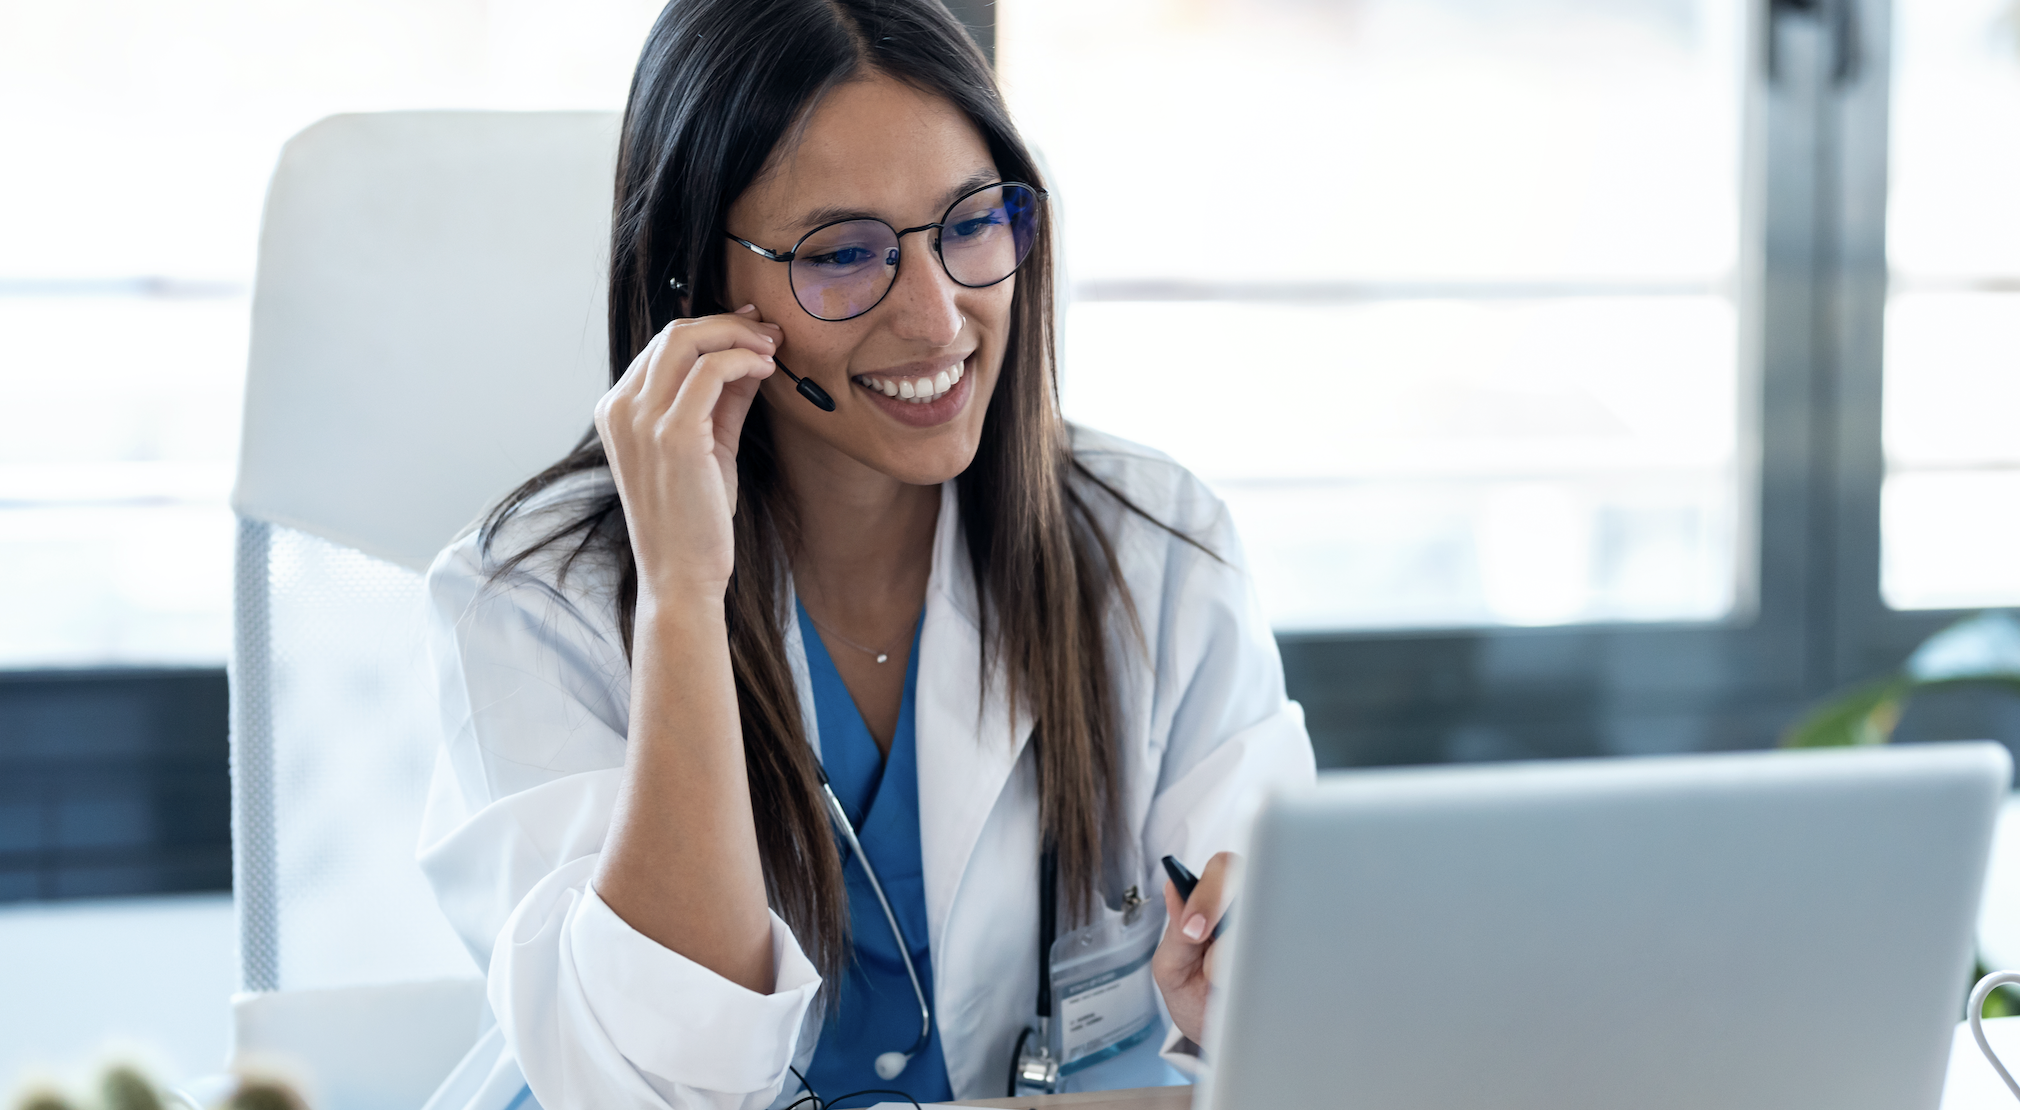 FAQ: Clinical Aspects of Telehealth